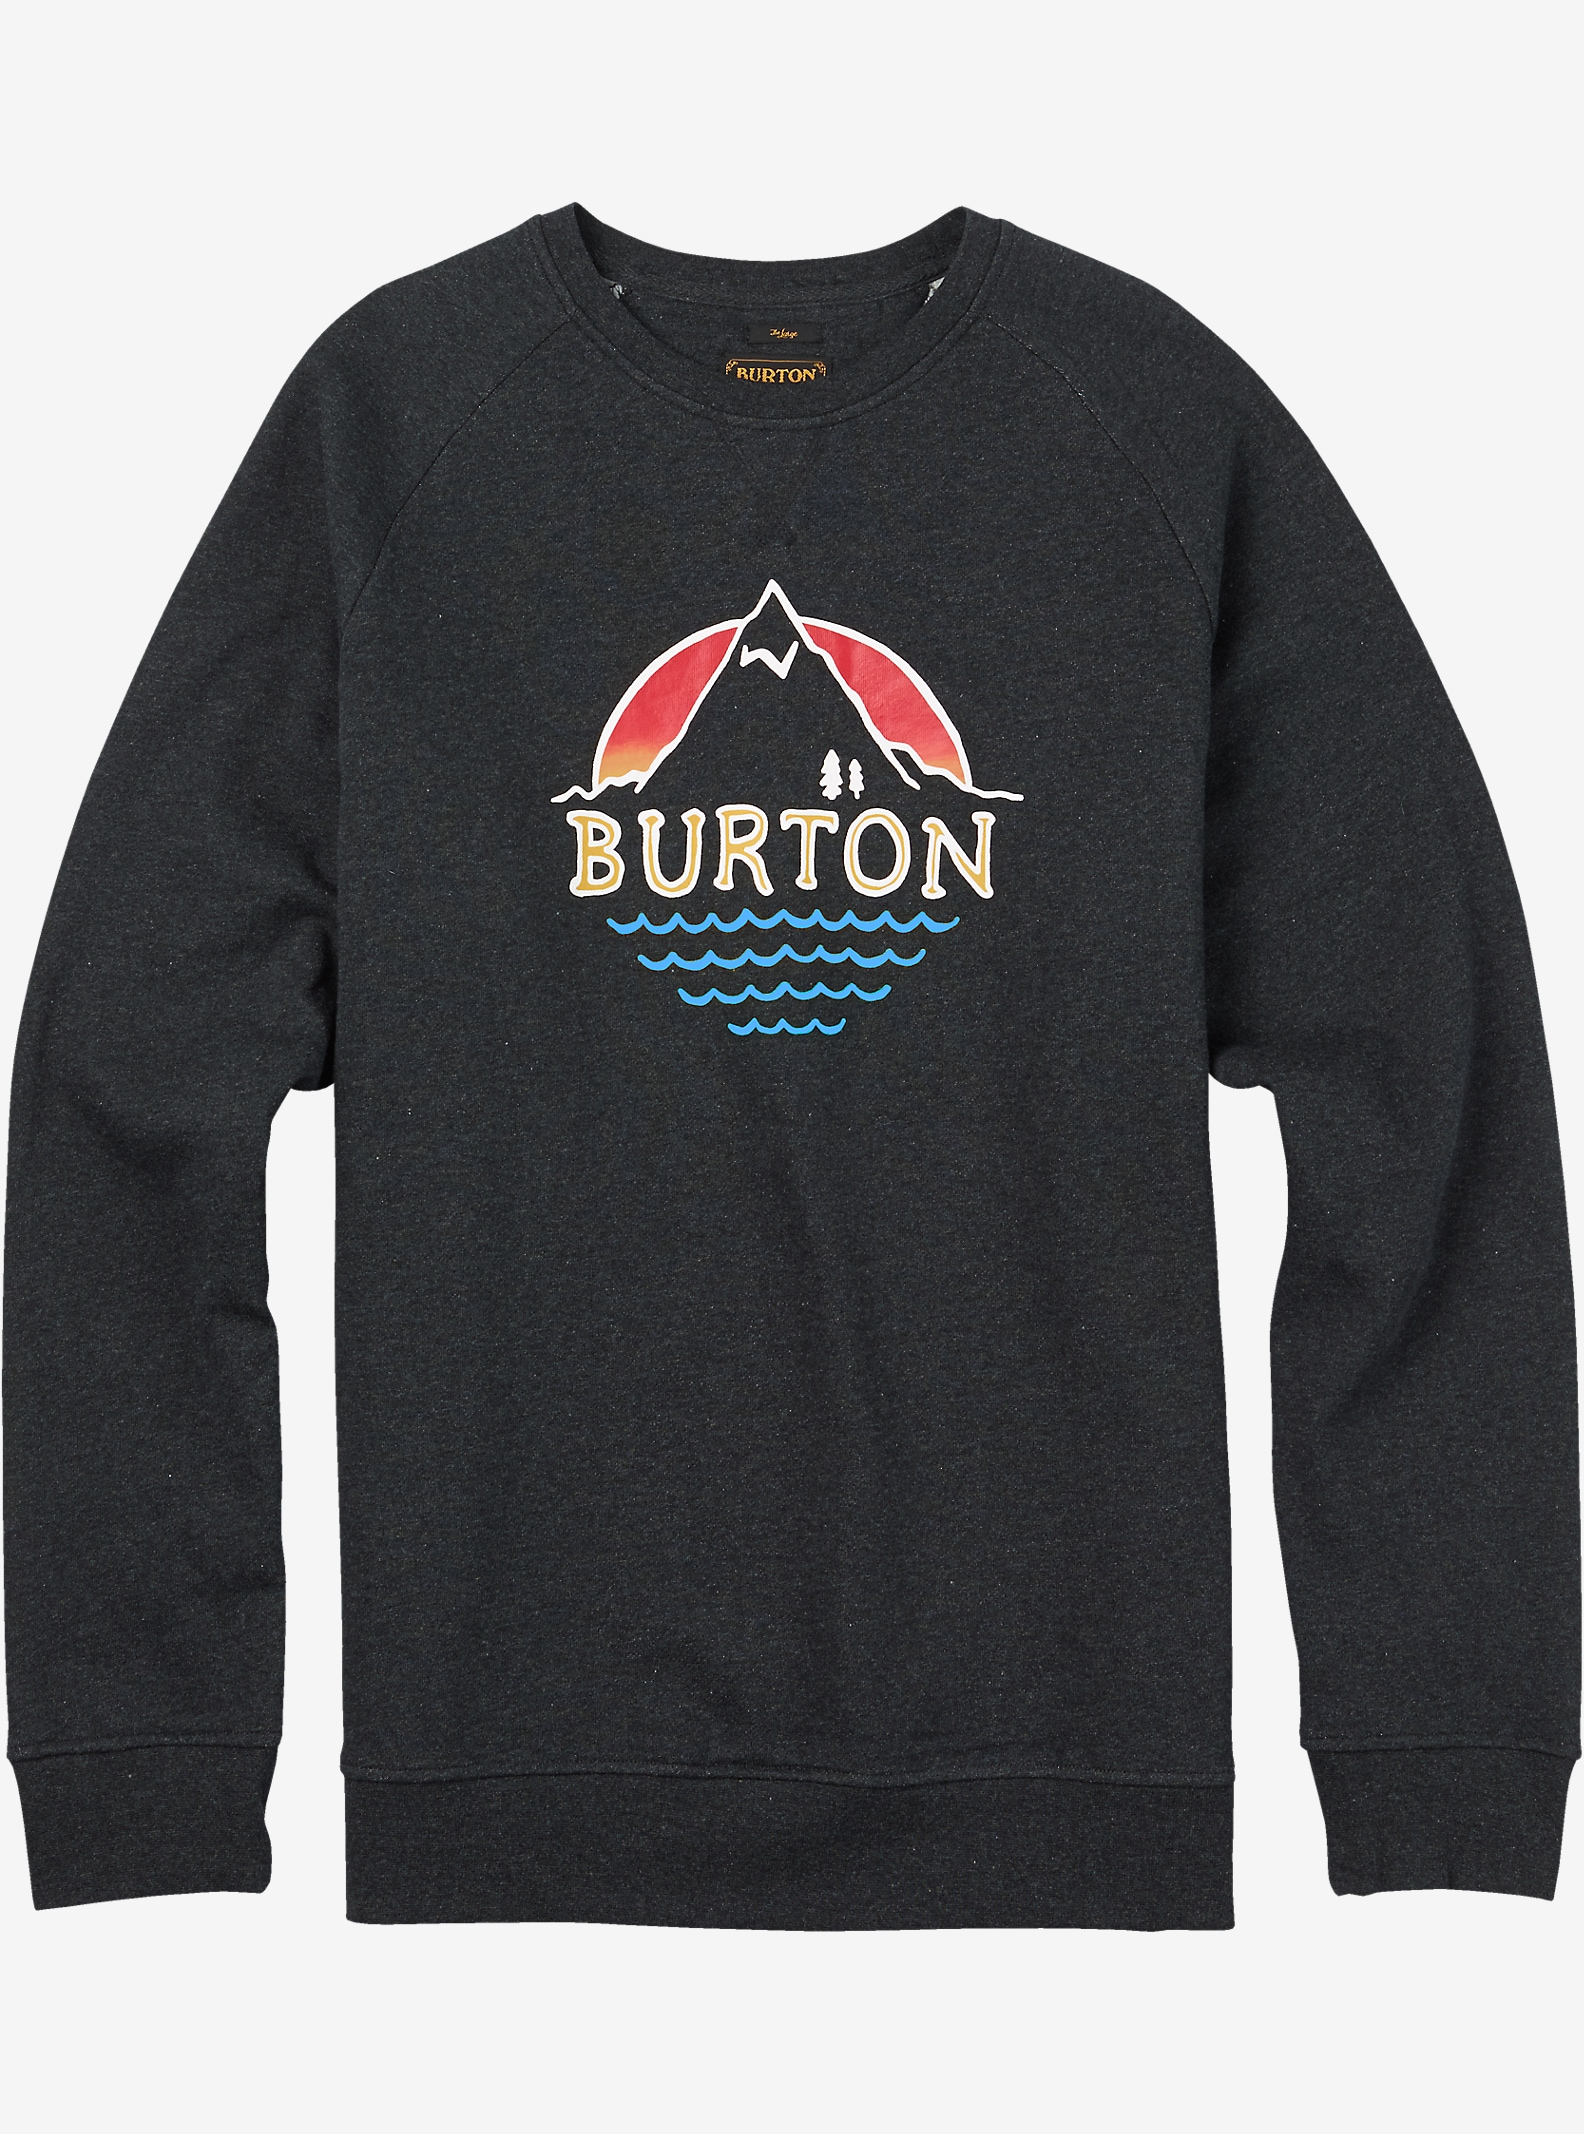 Burton Panorama Crew Pullover shown in True Black Heather